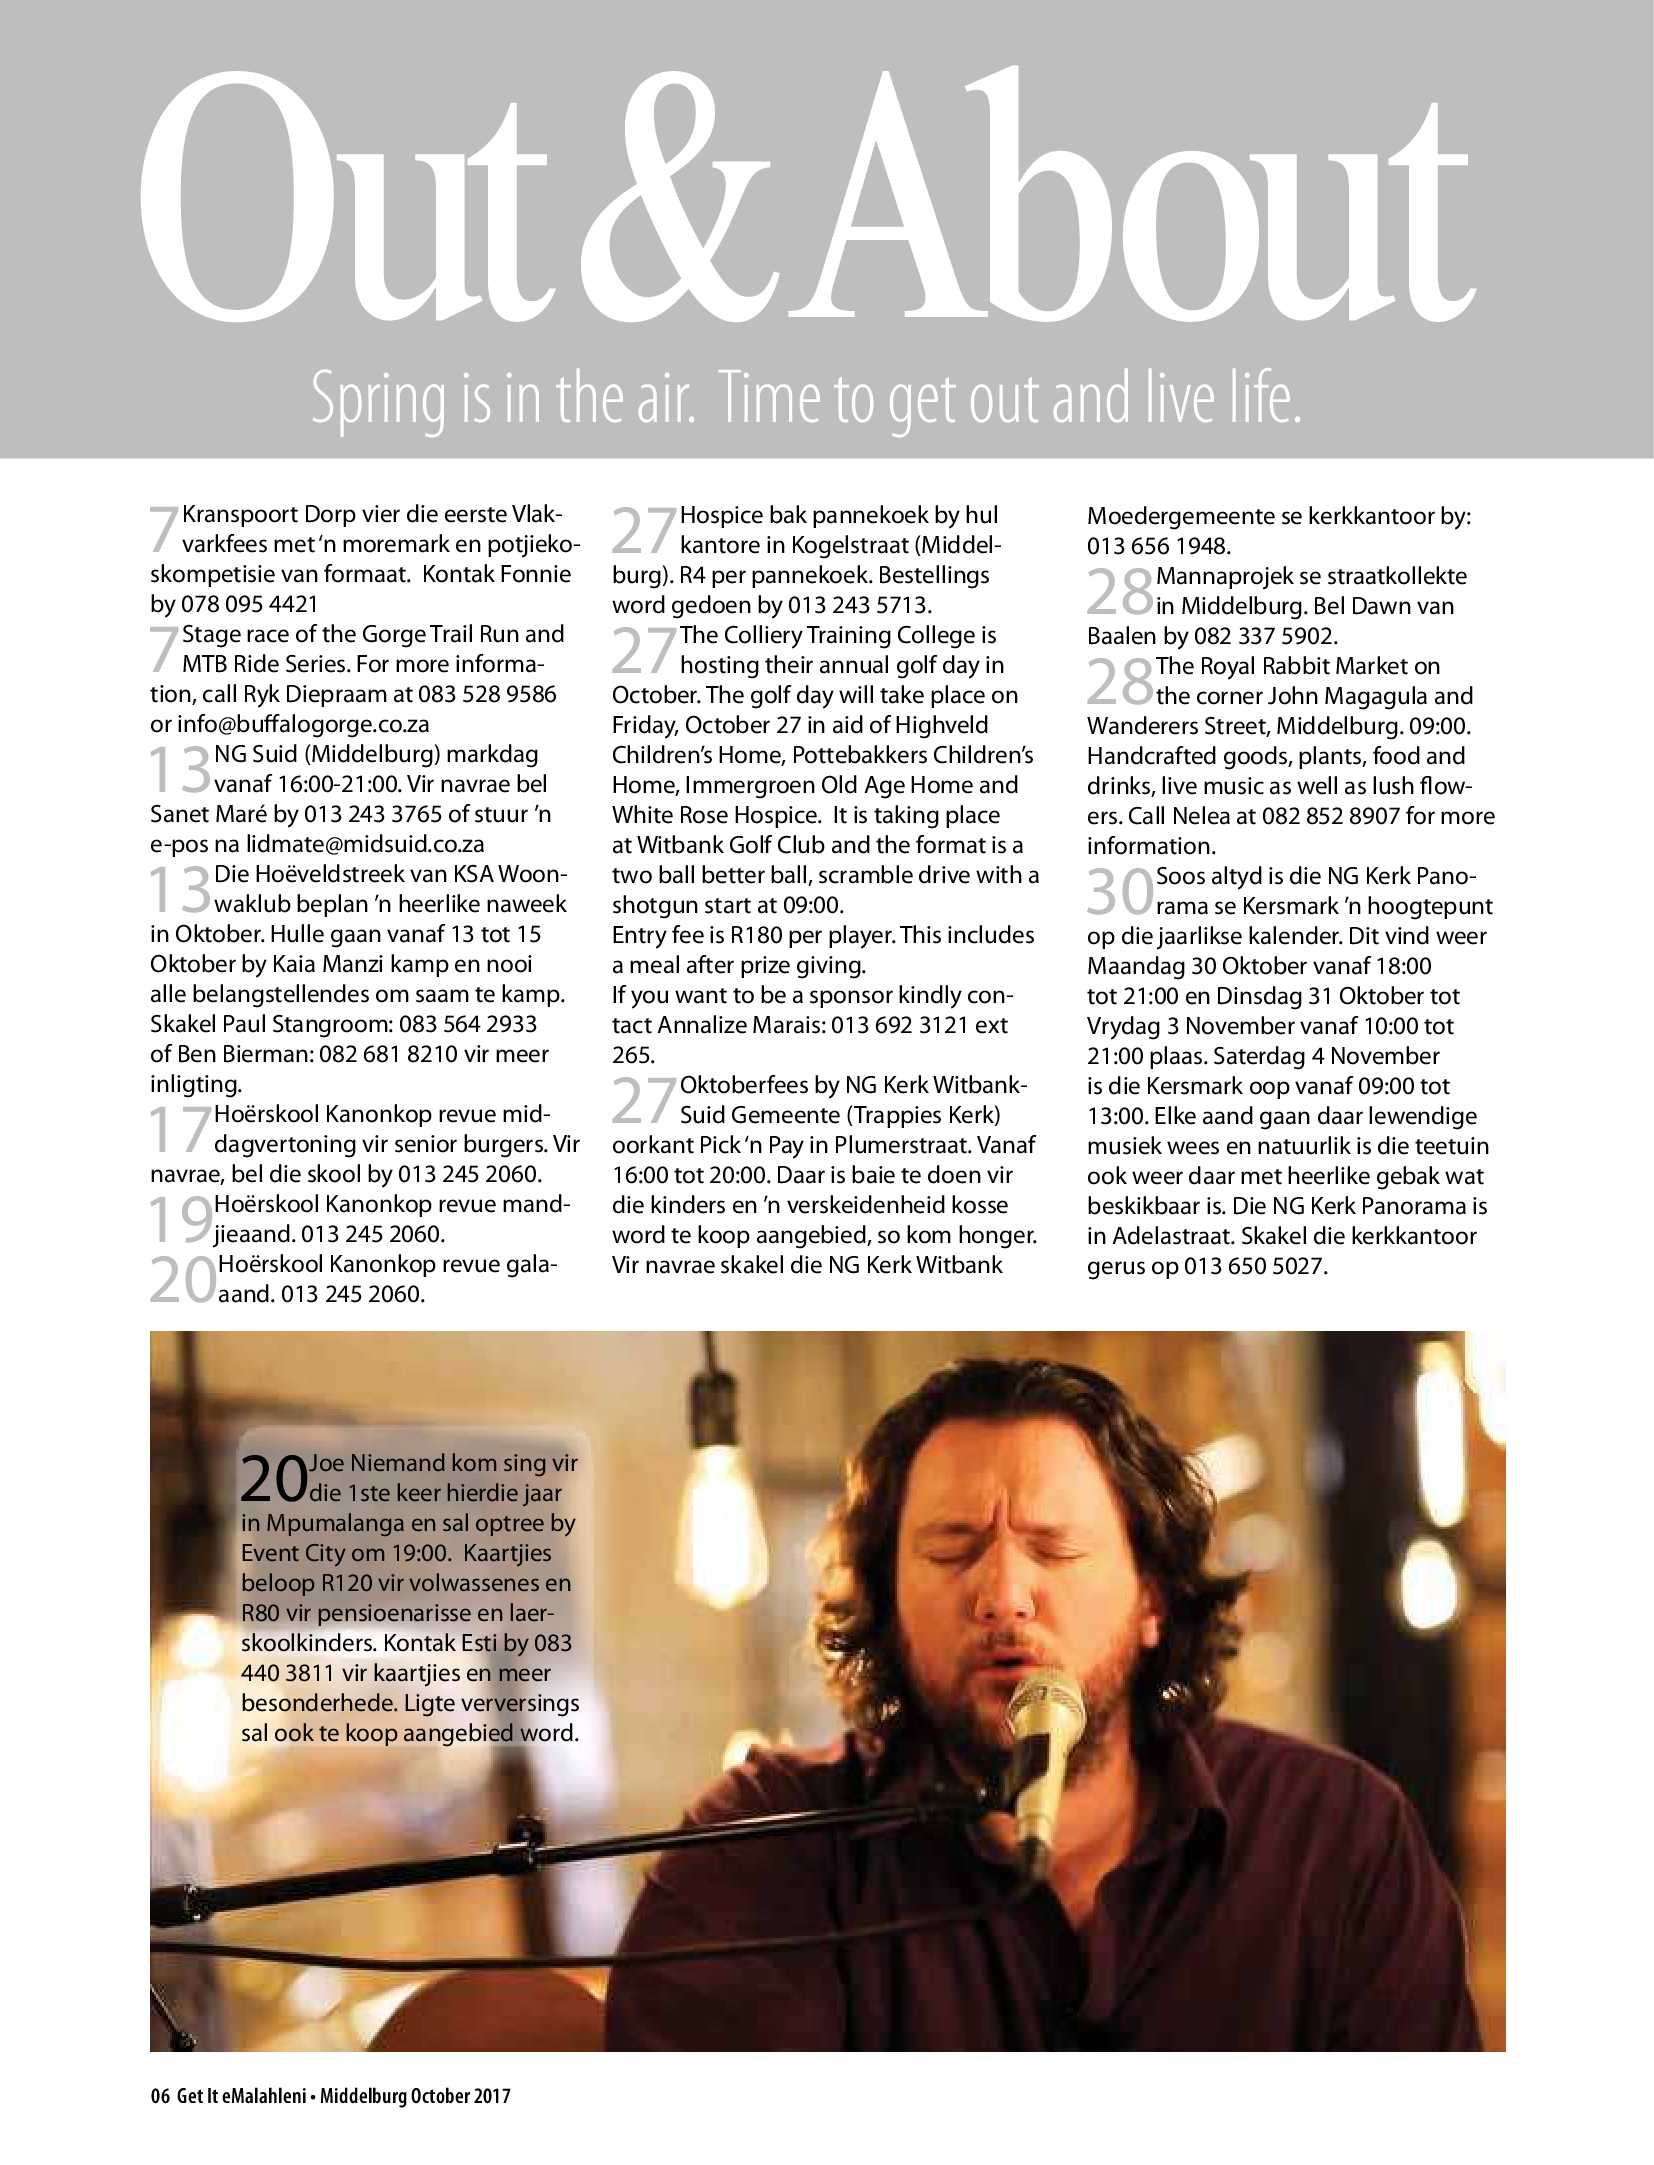 get-middelburg-october-17-epapers-page-8